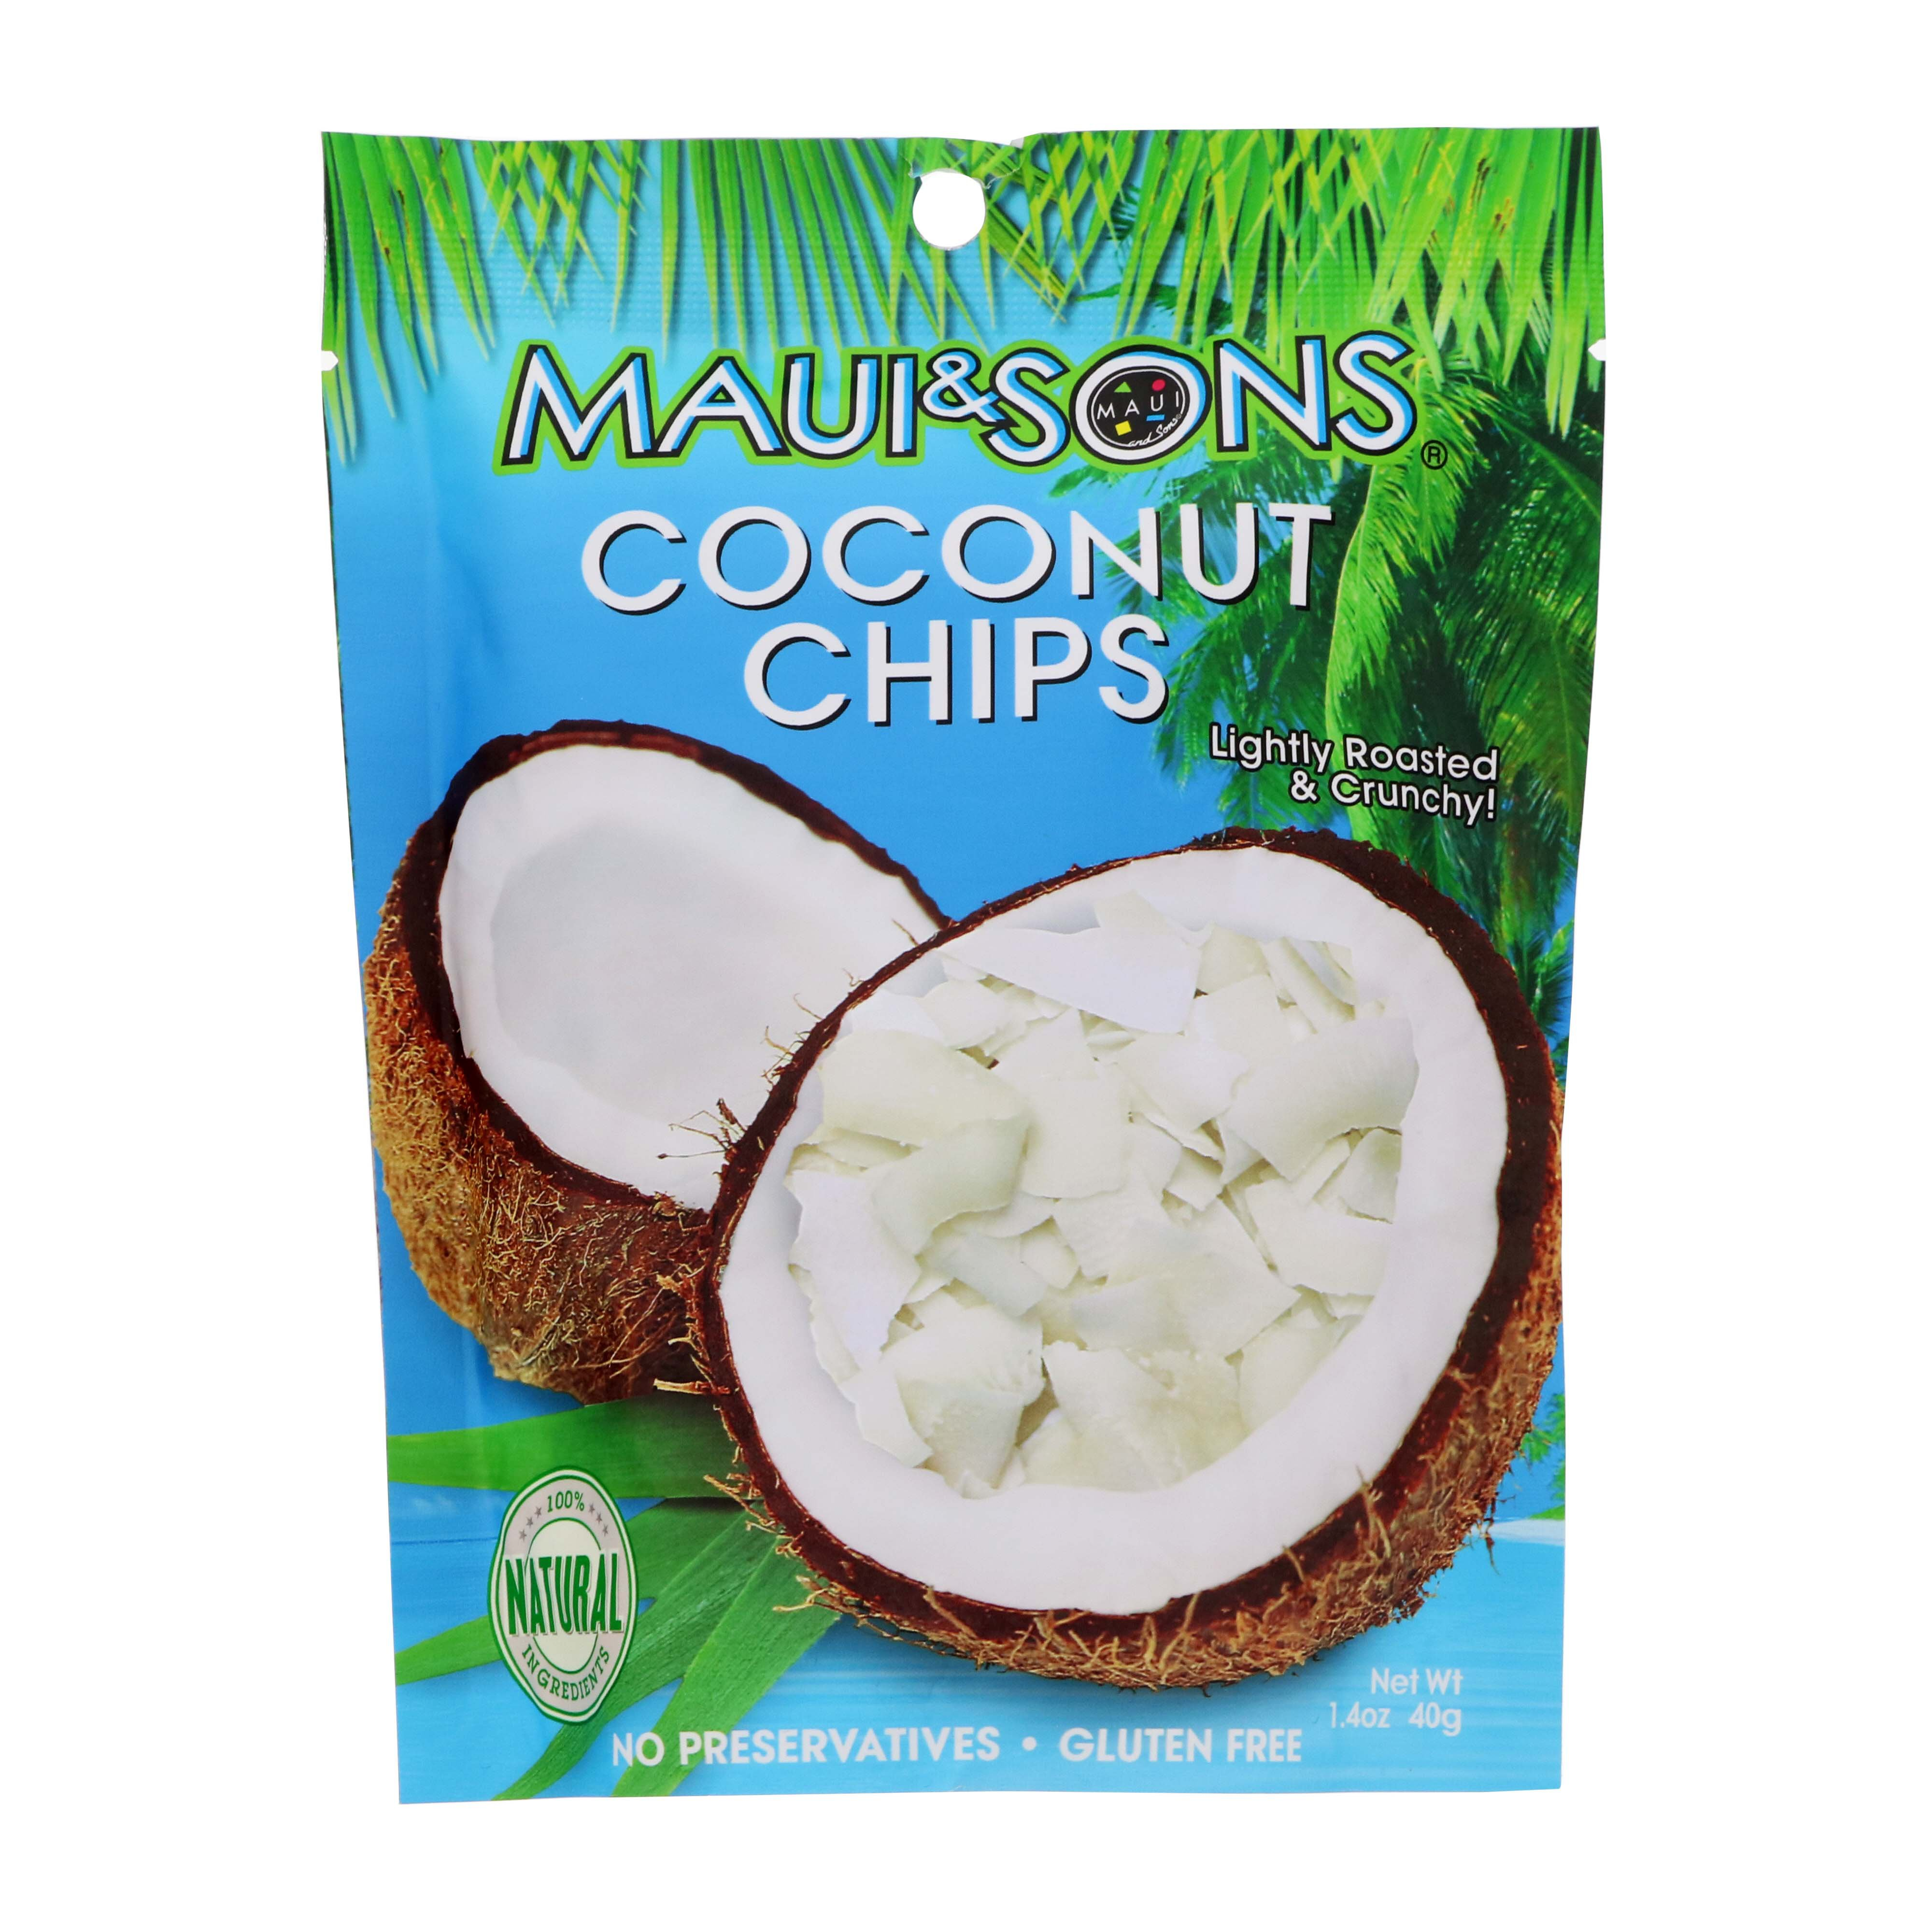 Maui & Sons Coconut Chips Lightly Roasted & Crunchy - Shop Dried ...